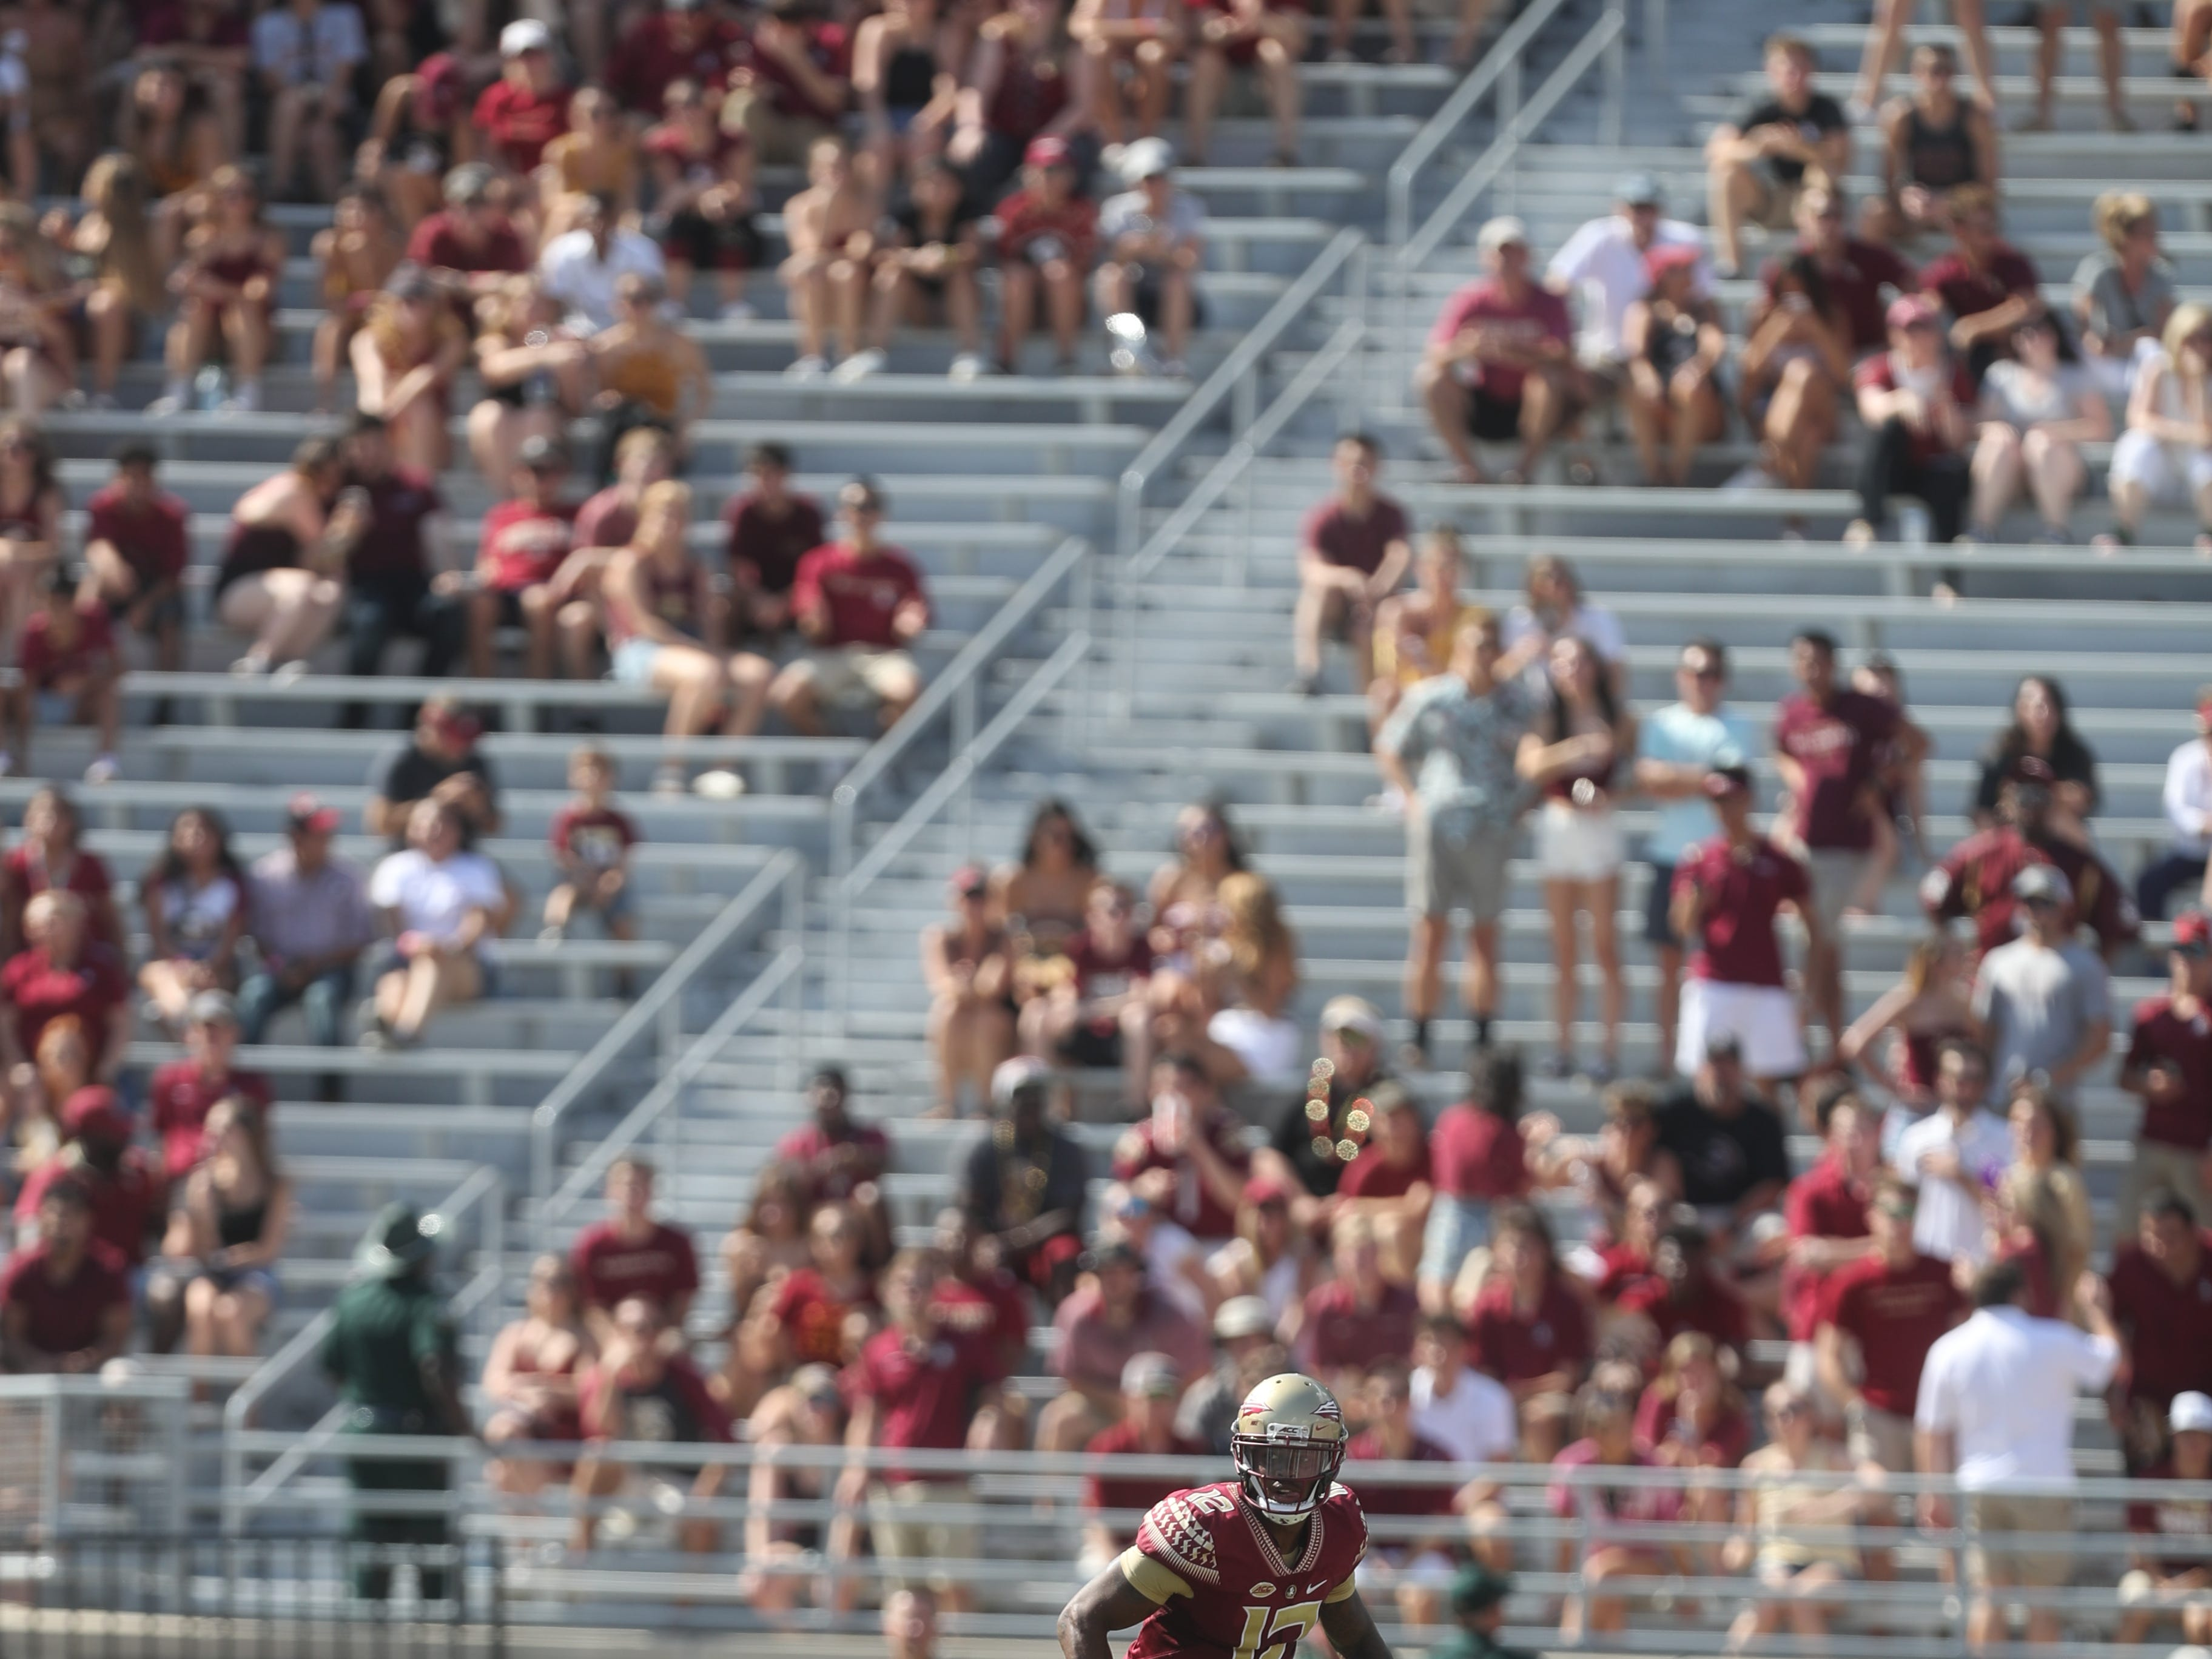 Florida State Seminoles quarterback Deondre Francois (12) looks for an open receiver during a game between the Florida State University Seminoles and the Northern Illinois University Huskies at Doak S. Campbell Stadium in Tallahassee, Fla. Saturday, September 22, 2018.